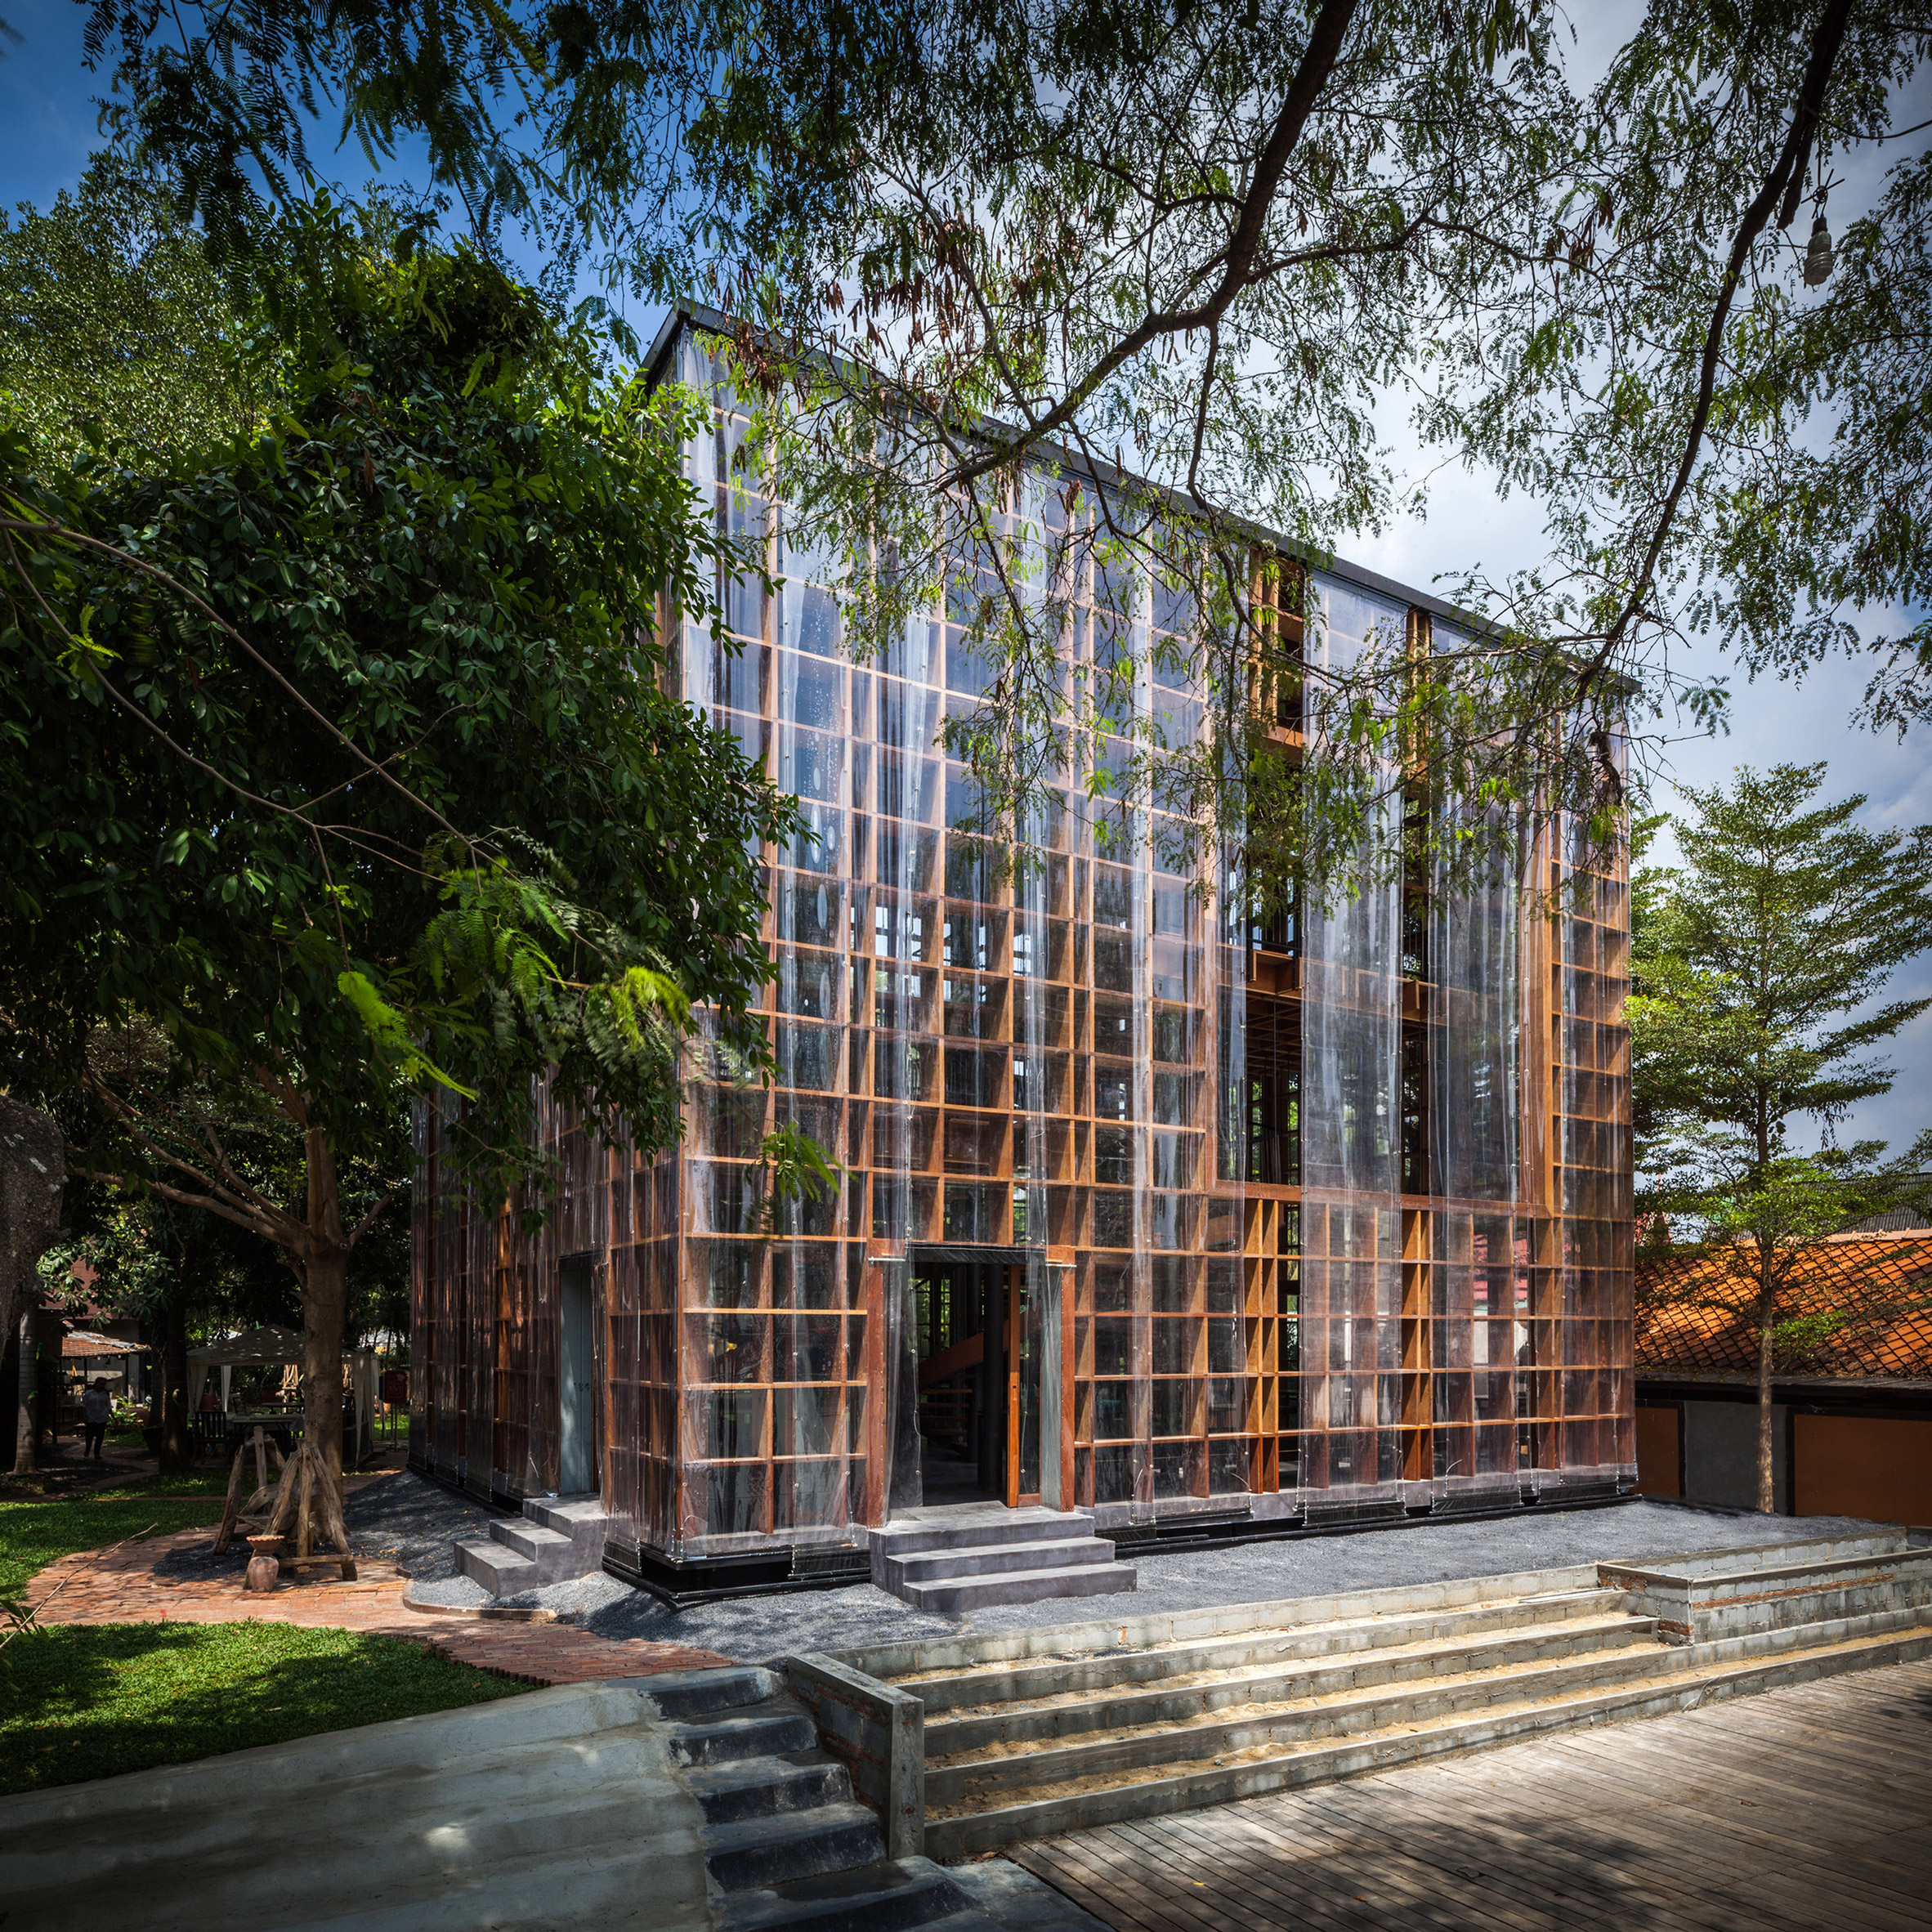 Bangkok Project Studio builds riverside wine bar with latticed plywood walls in Thailand